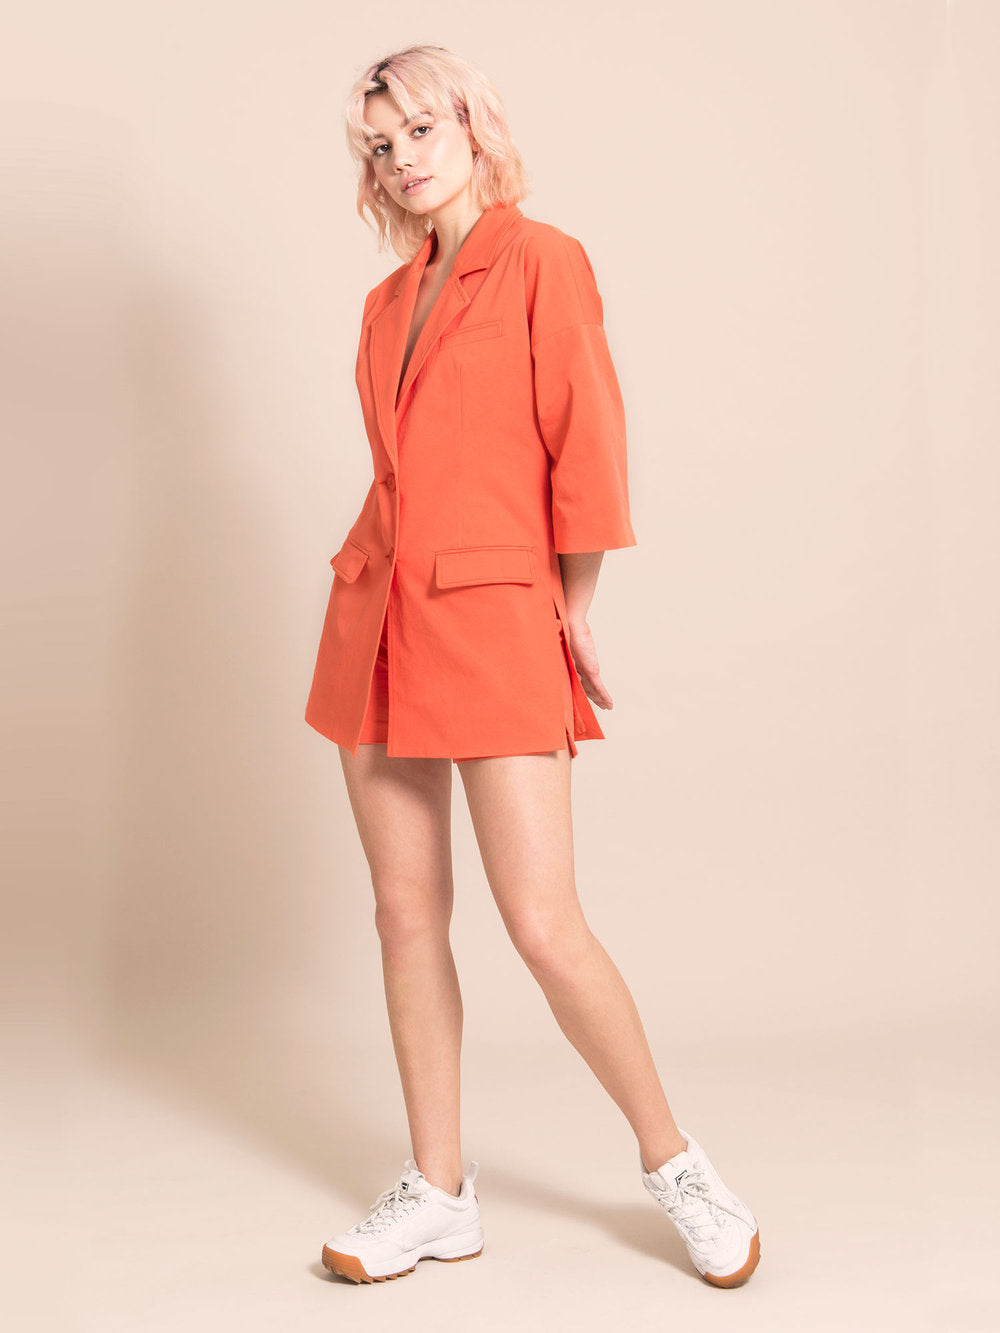 Woman wearing a long orange sustianable blazer